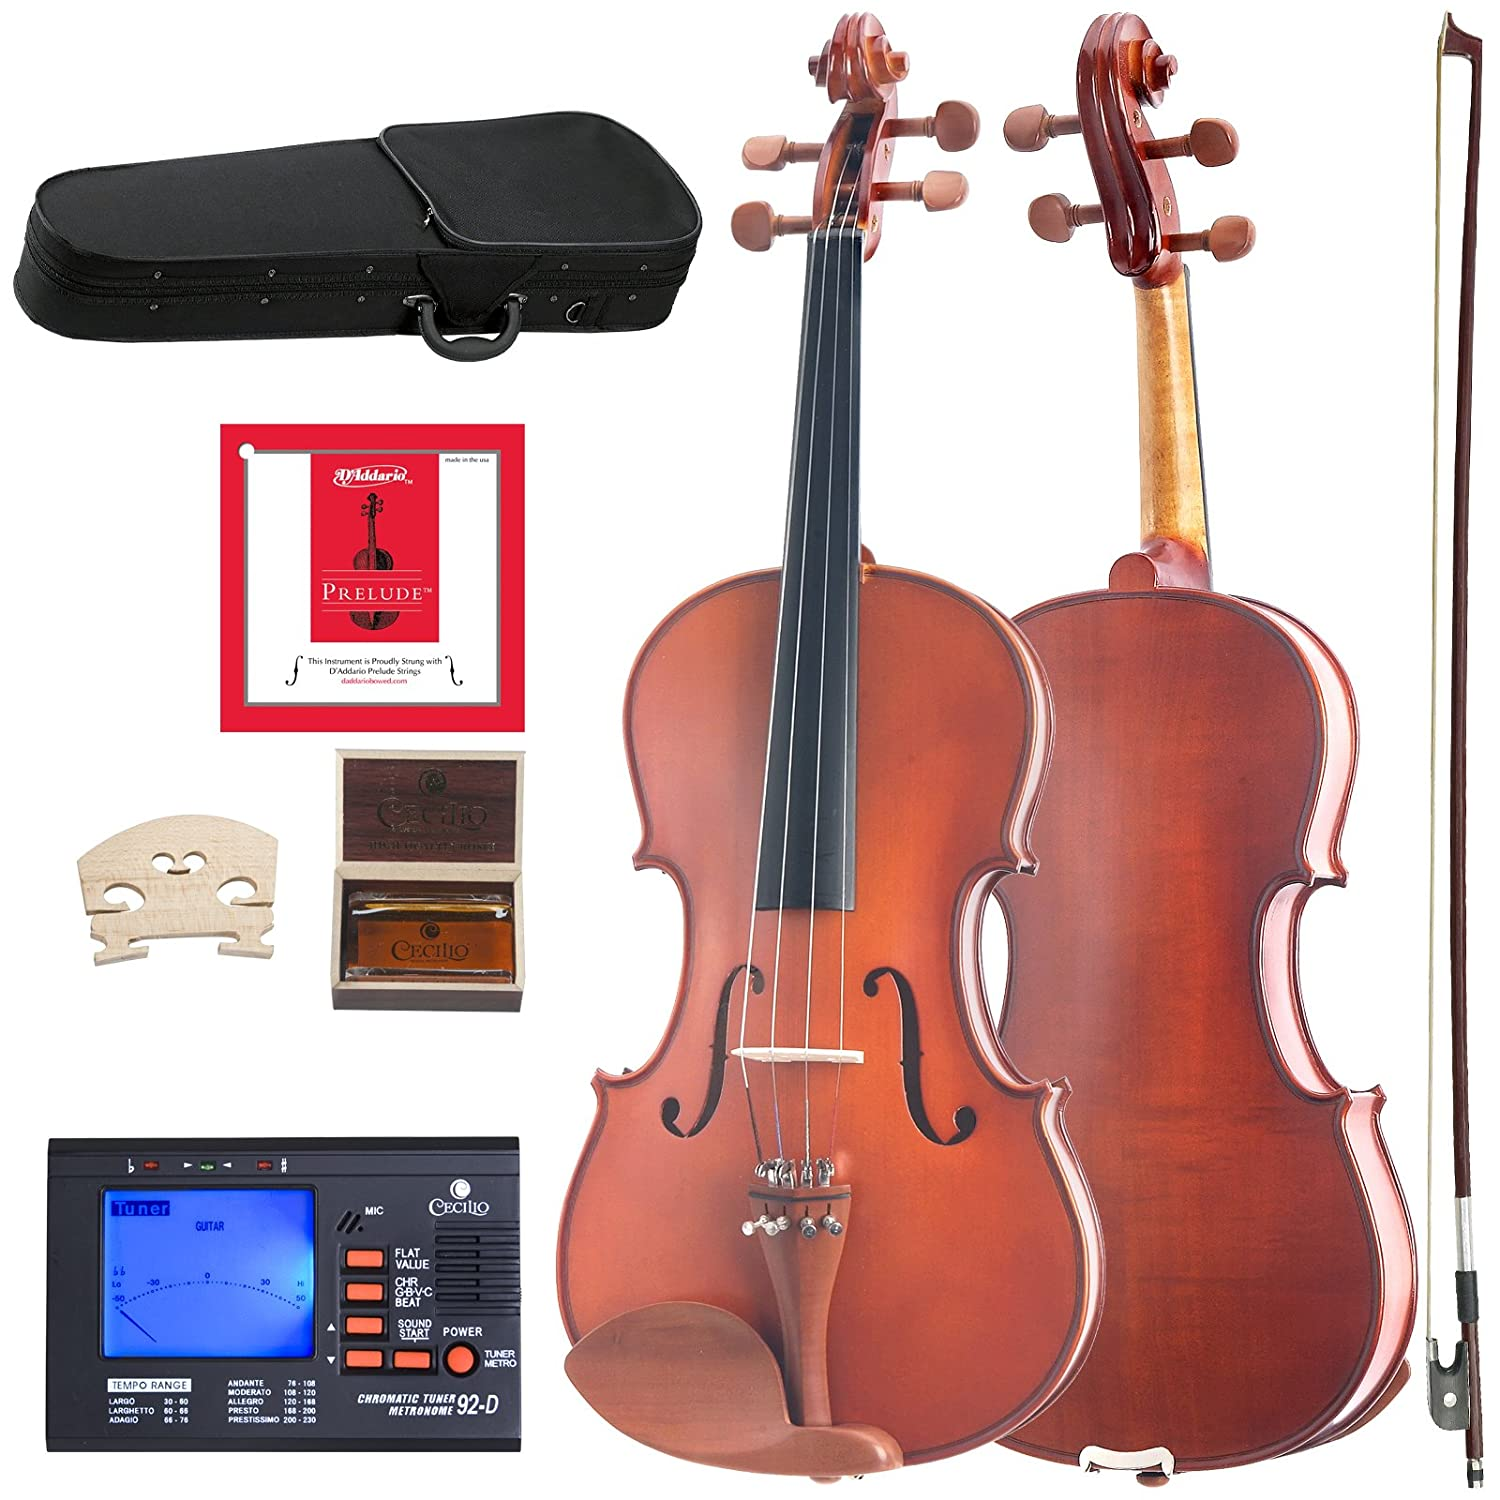 Cecilio CVA-400 Solidwood Viola with D'Addario Prelude Strings, Size 16-Inch Cecilio Musical Instruments DA_16CVA-400+92D